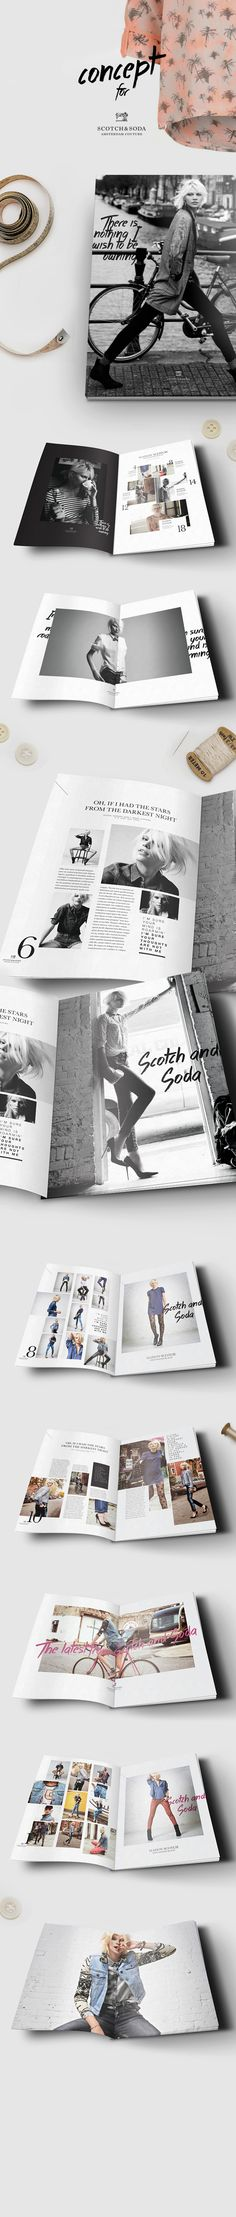 Scotch & Soda magazine/lookbook concept by jo van grinderbeek, via Behance